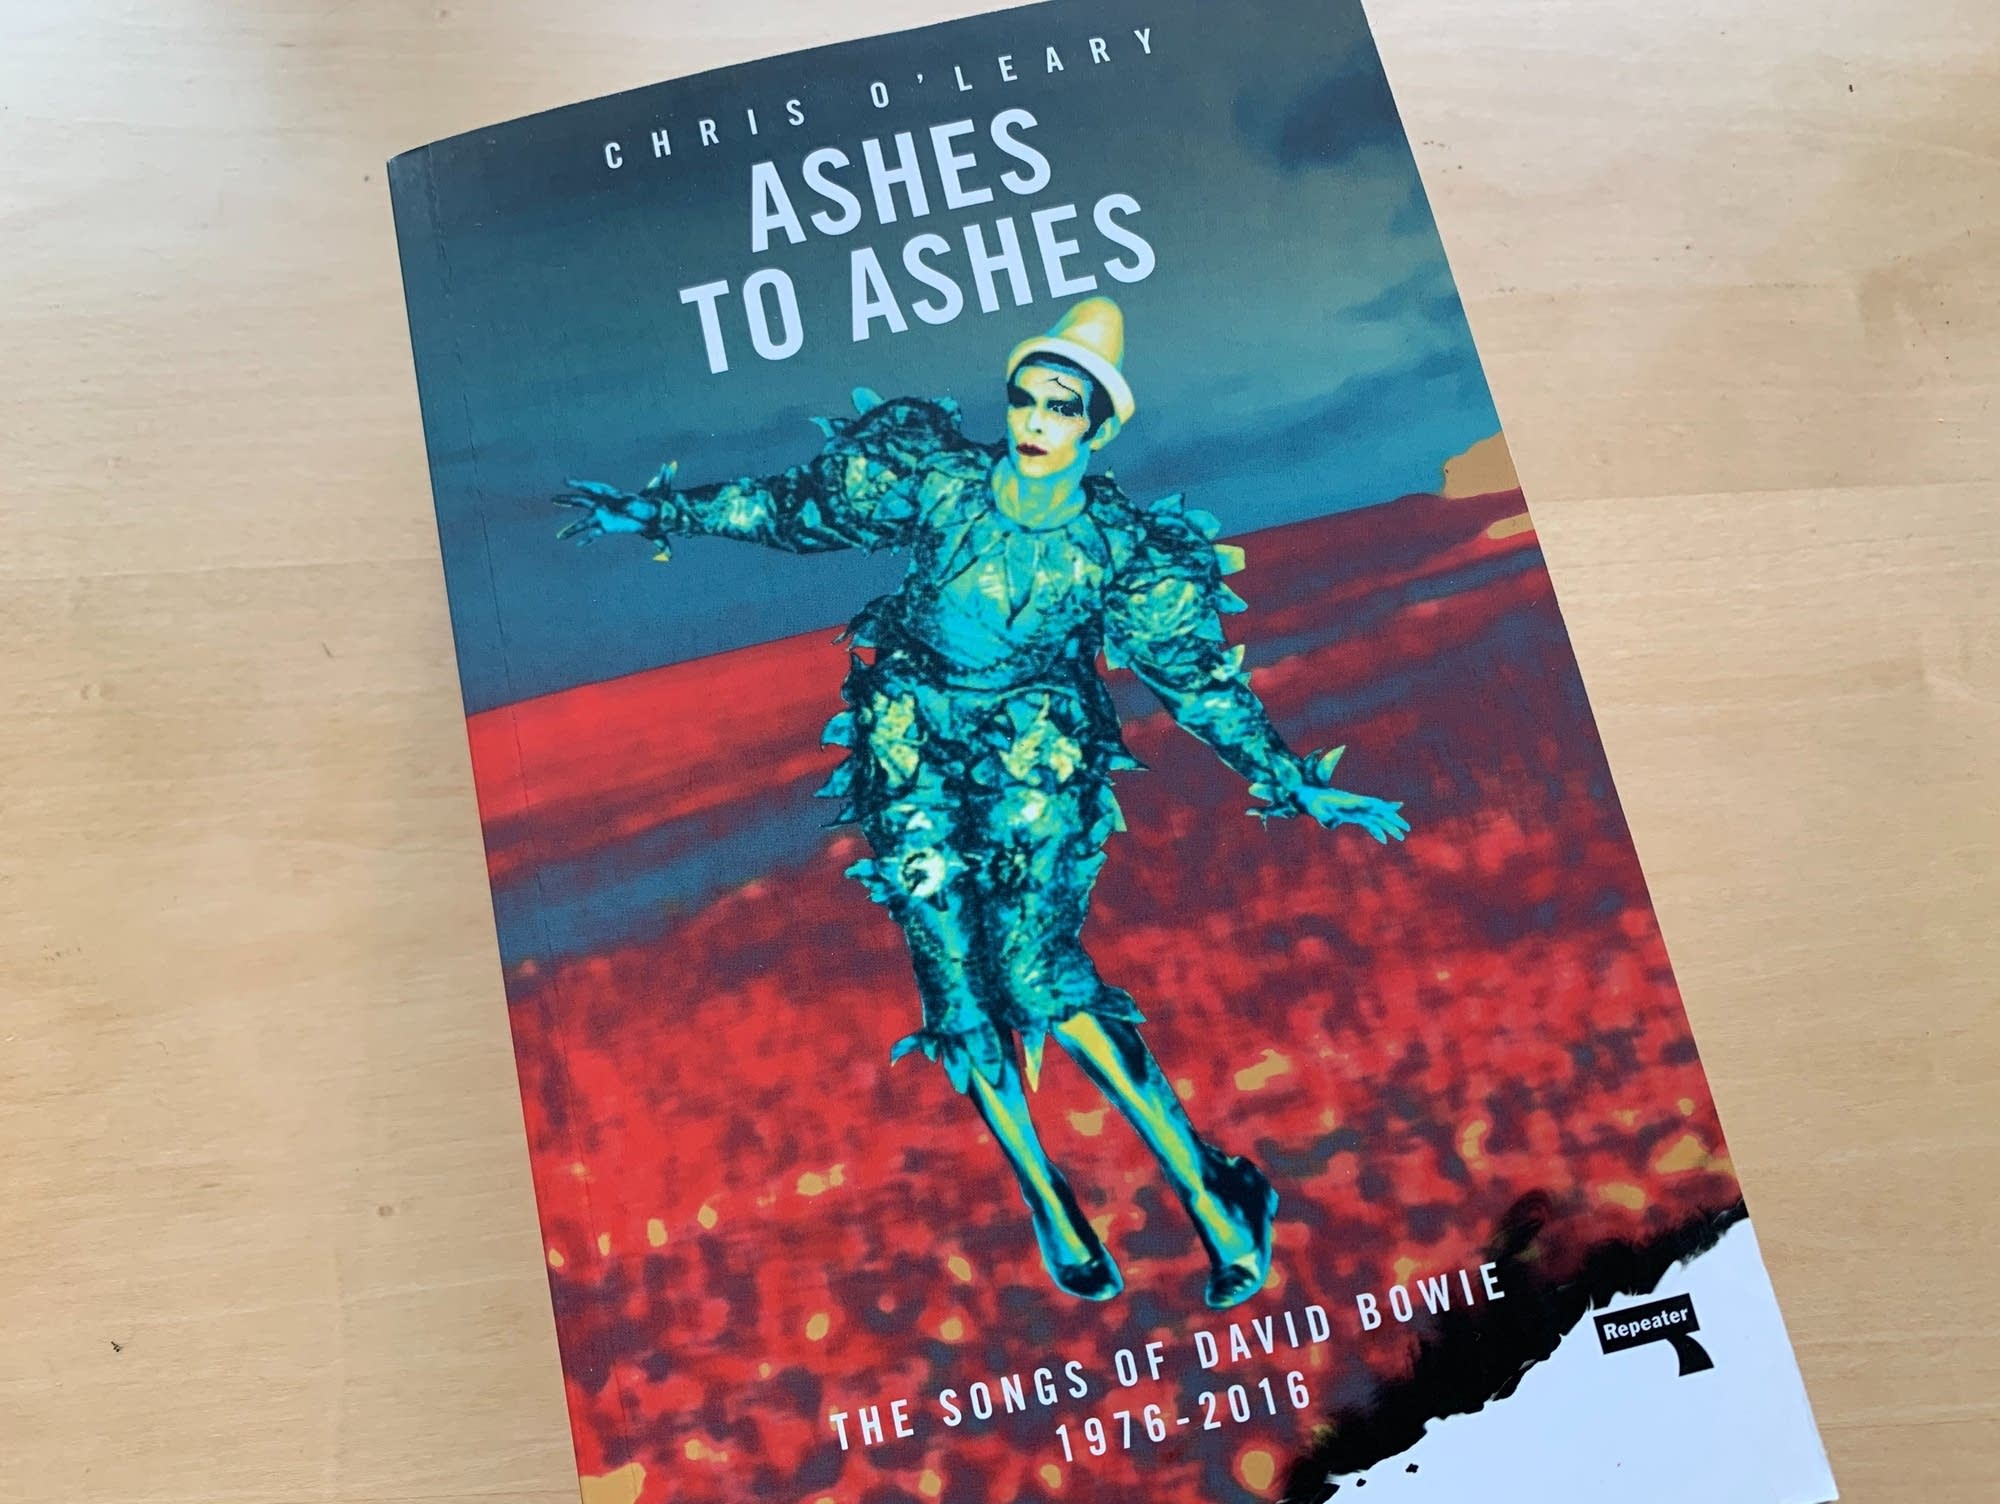 'Ashes to Ashes: The Songs of David Bowie 1976-2016.'